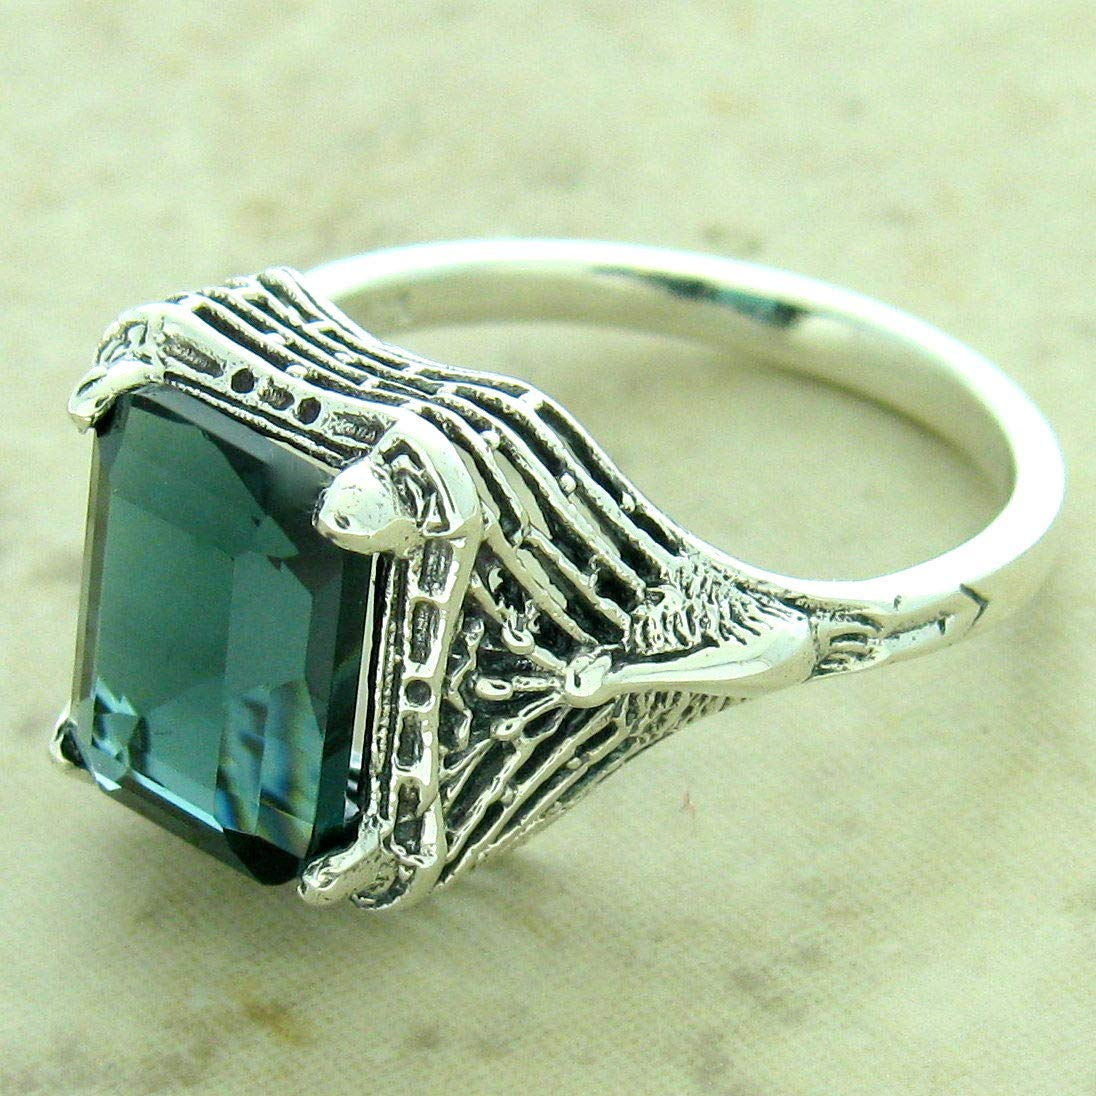 2 CT London Blue SIM Topaz 925 Sterling Silver Antique Finish Ring Size 9 KN-154